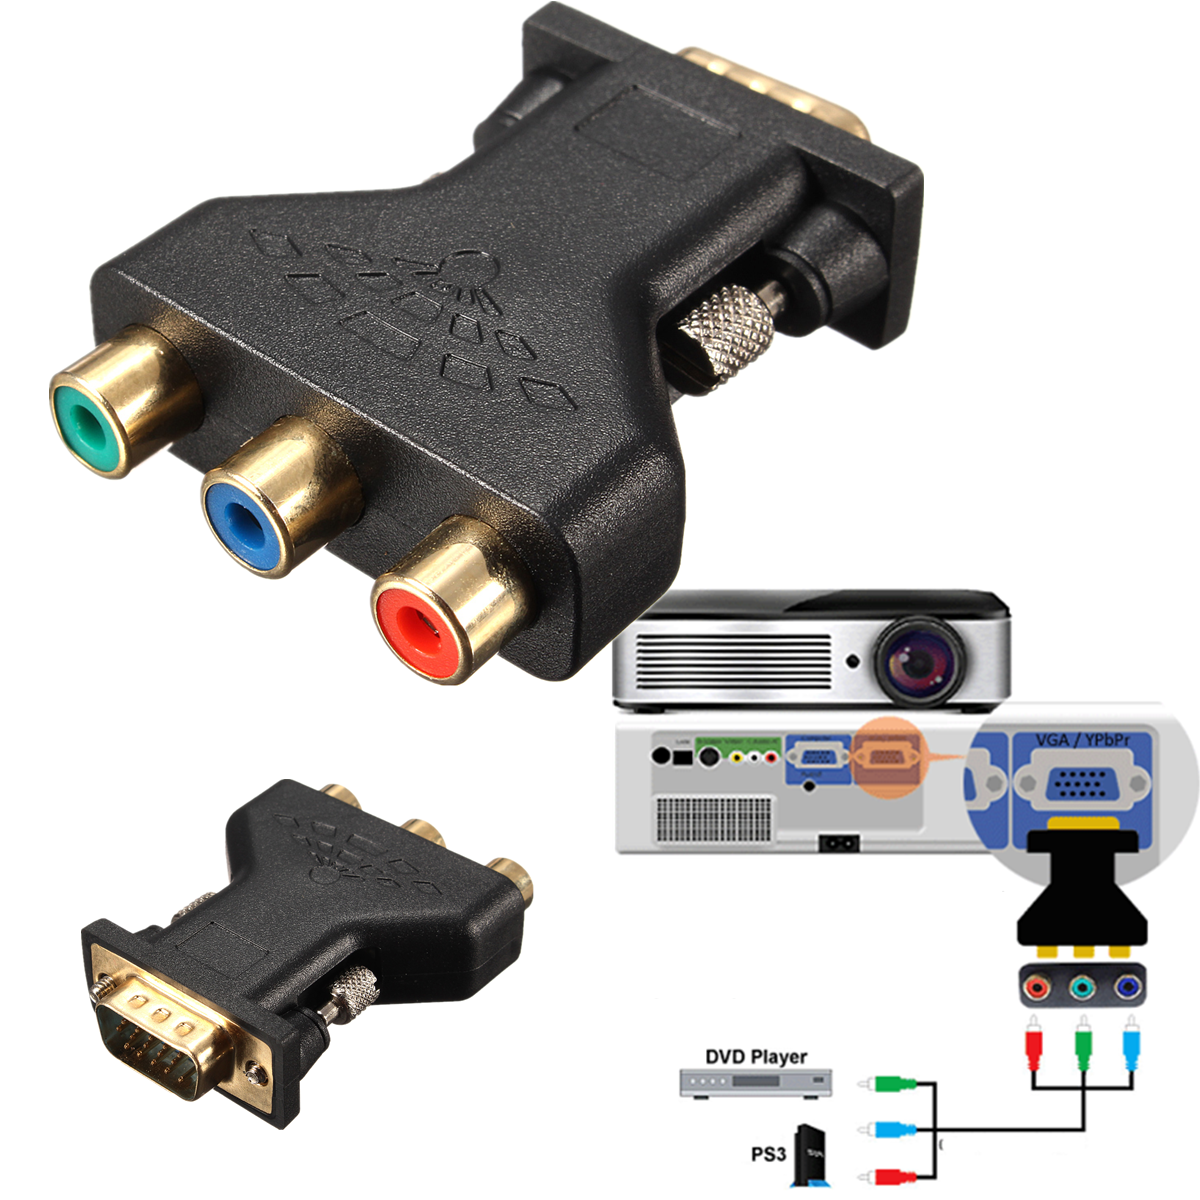 Vga To Component Cable Schematic Real Wiring Diagram S Video Adapter 3 Rca Rgb Female Hd15 Pin Styple Homemade With Audio